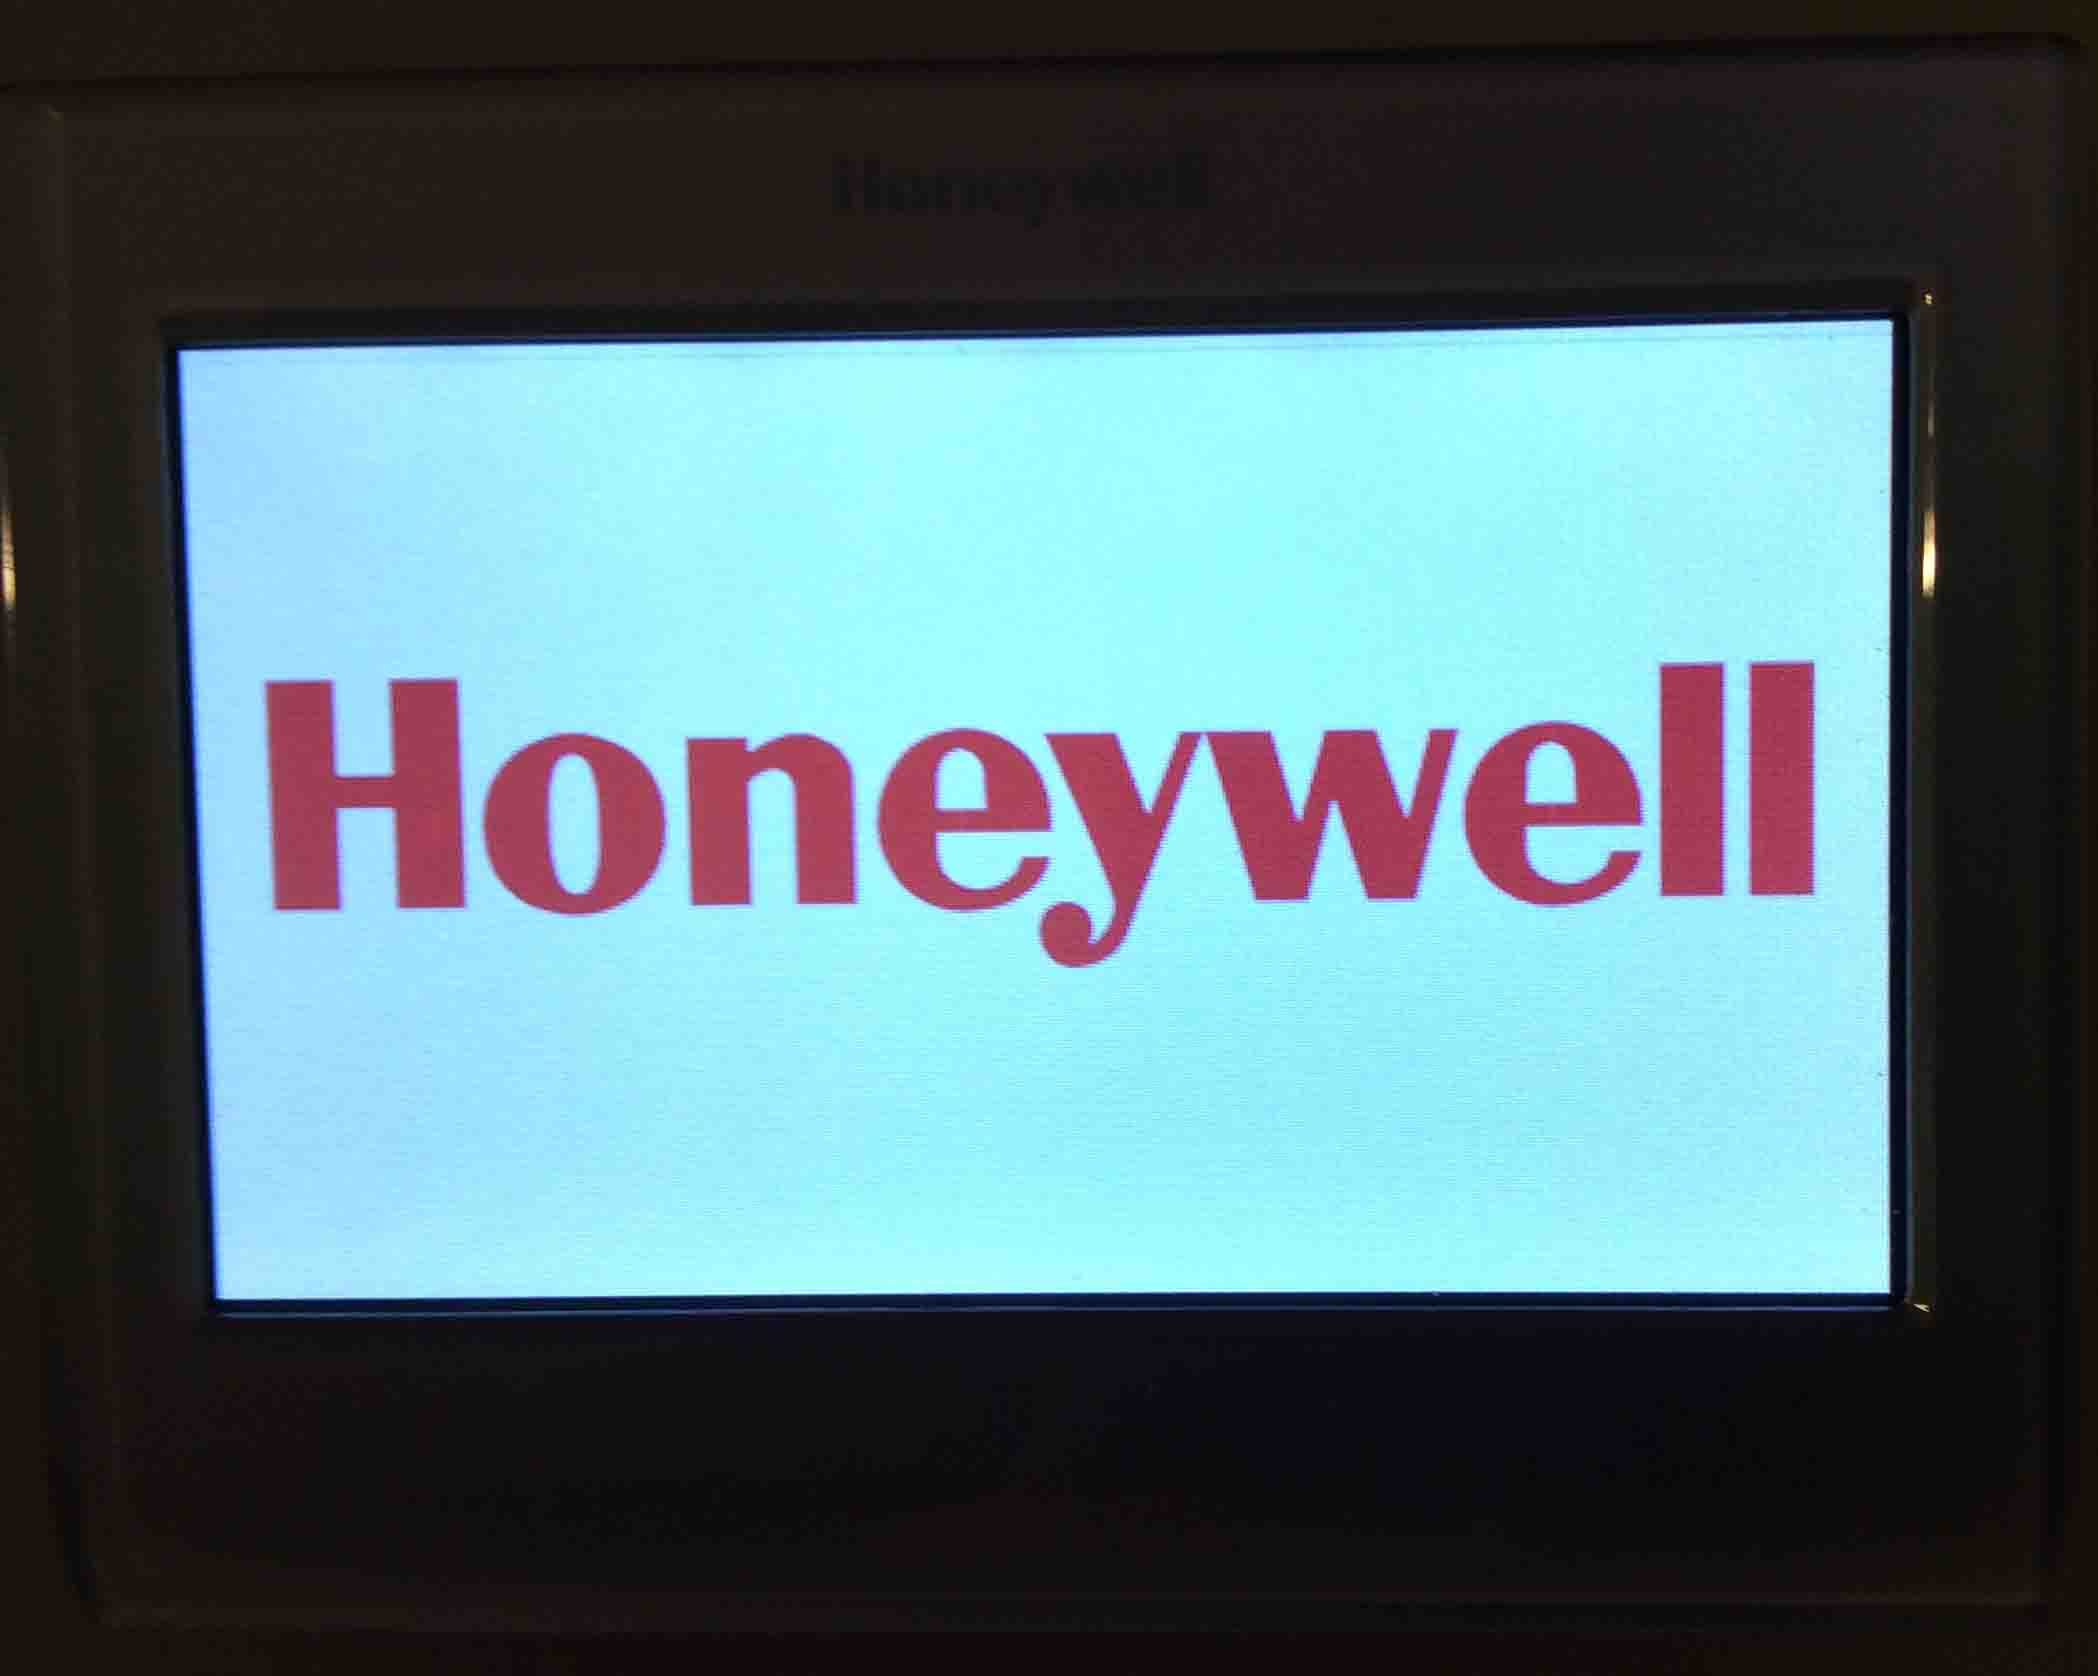 HoneywellRTH9580WFSmartThermostatBootScreen_001?fit=1200%2C959&ssl=1&resize=350%2C200 how to wire a honeywell thermostat with 4 wires tom's tek stop honeywell t8775c1005 wiring diagram at nearapp.co